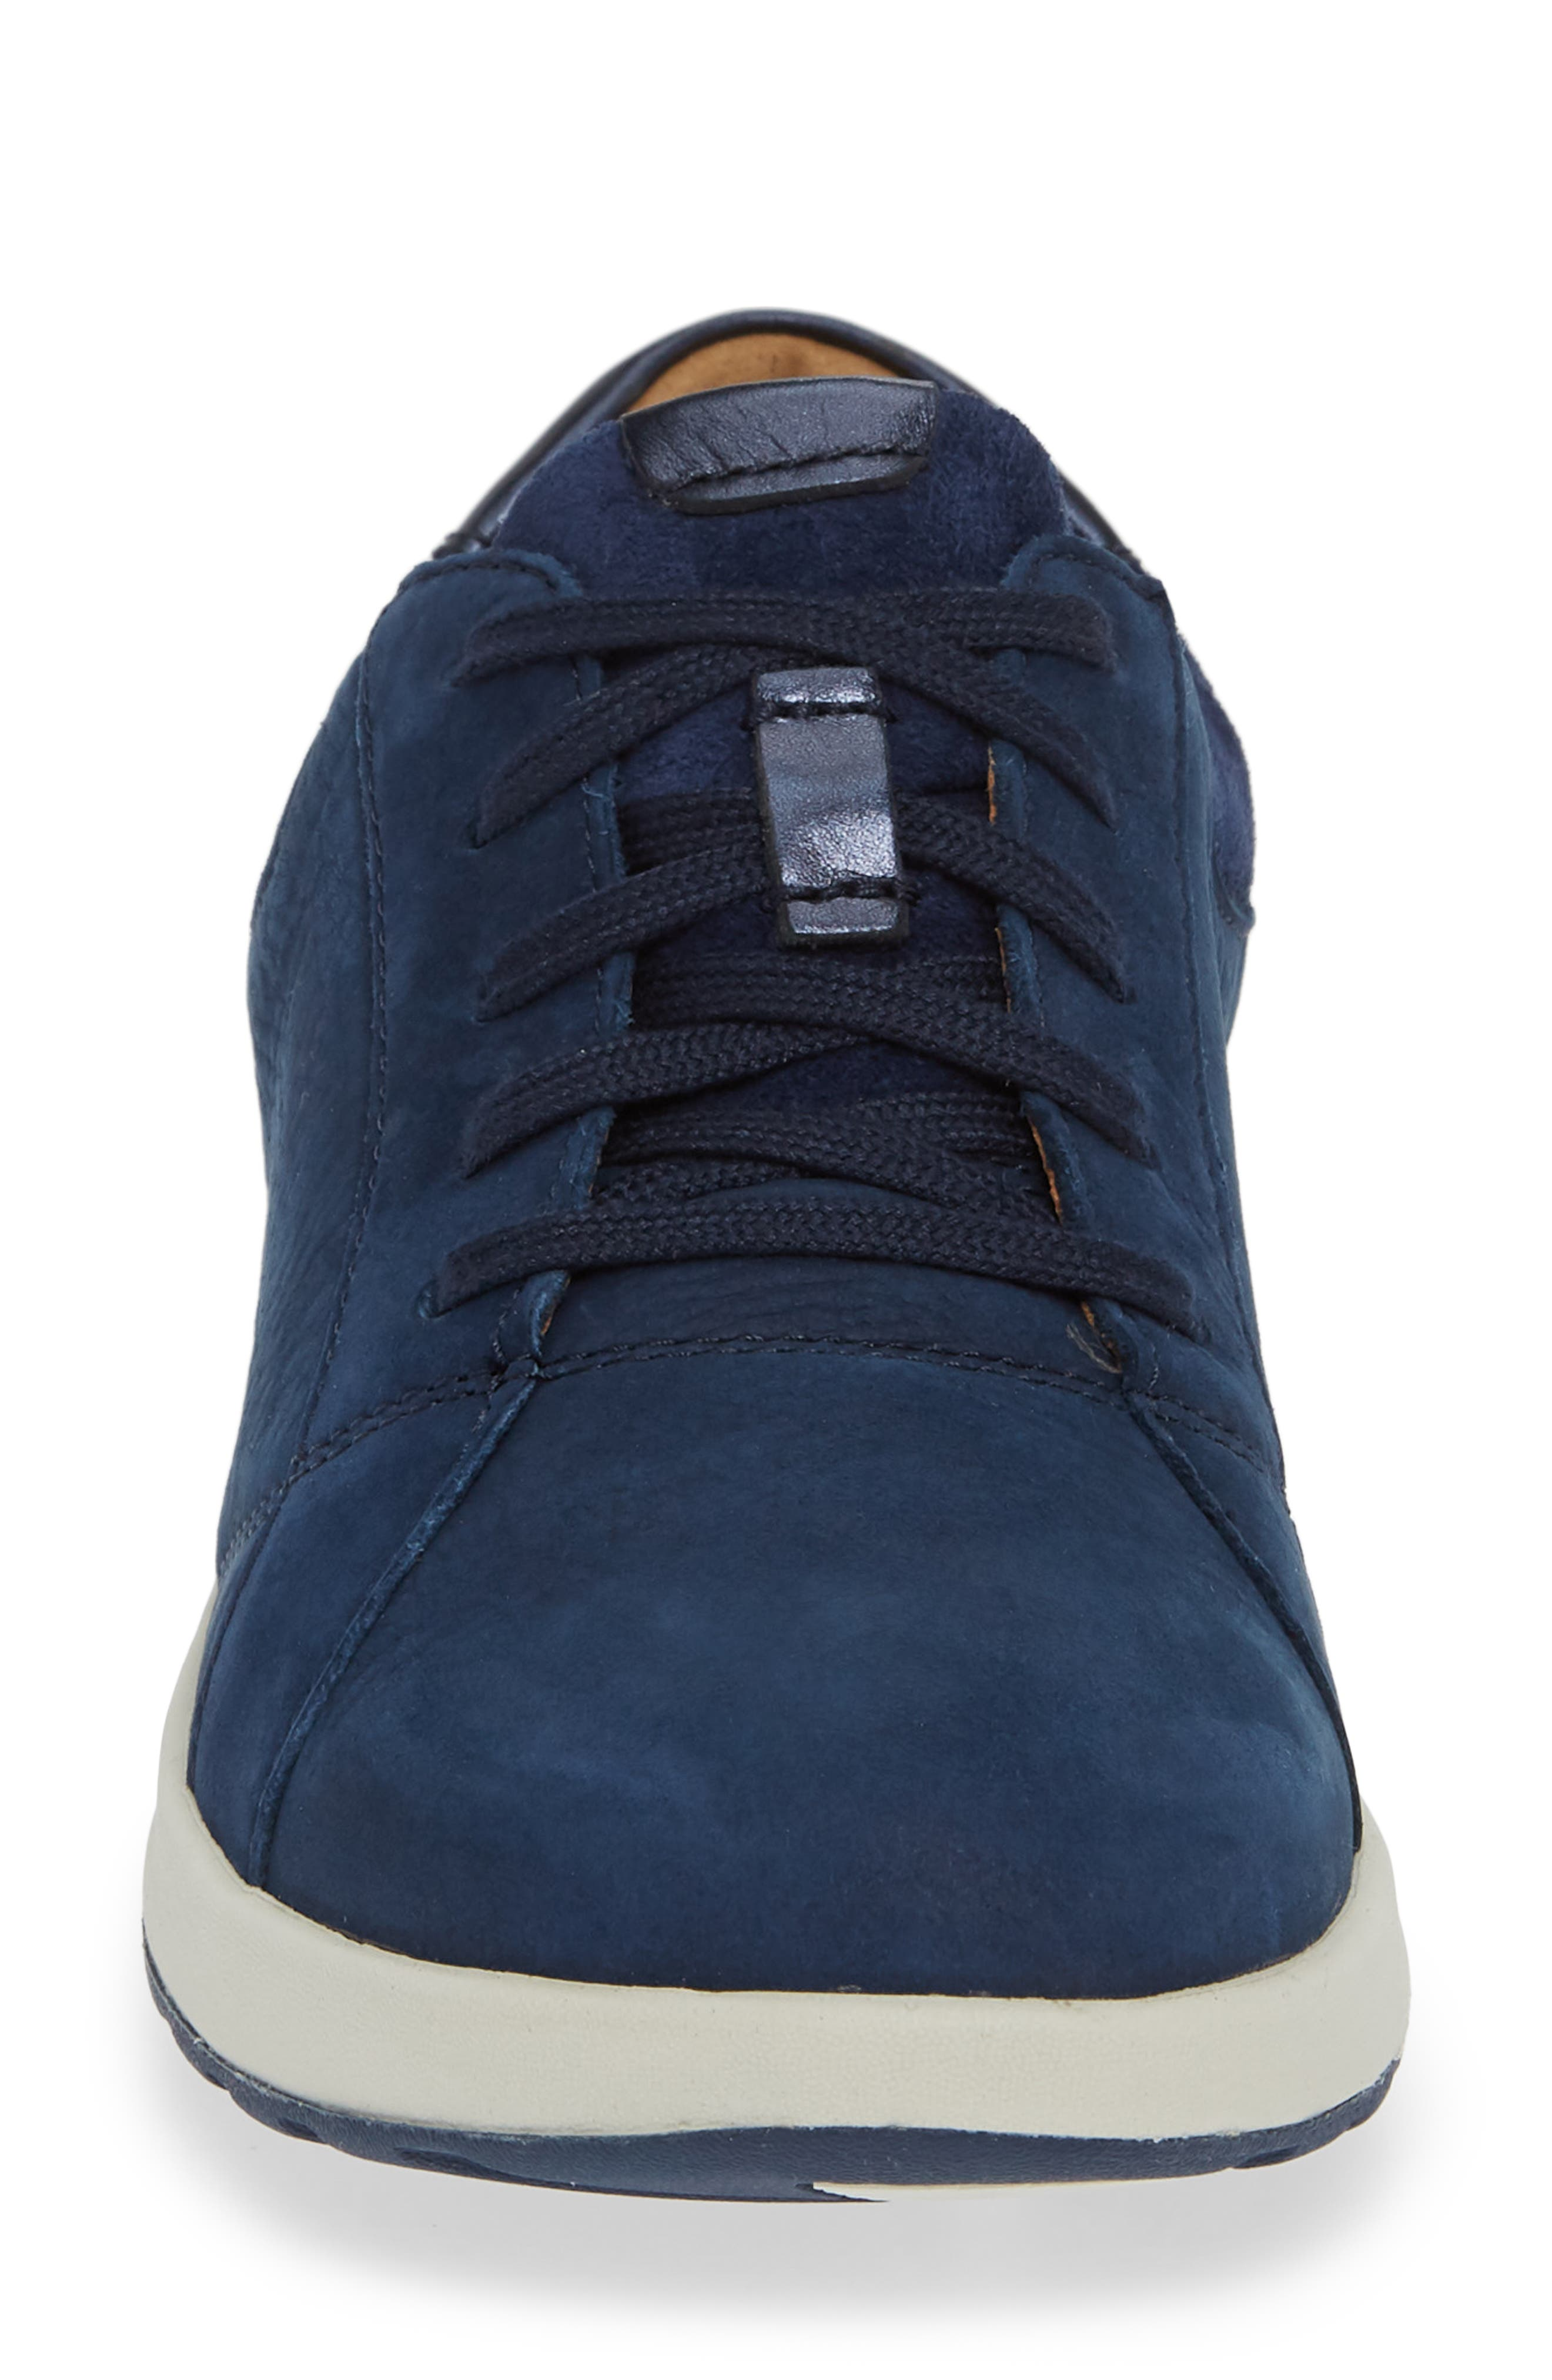 UnAdorn Lace-Up Sneaker,                             Alternate thumbnail 4, color,                             NAVY NUBUCK